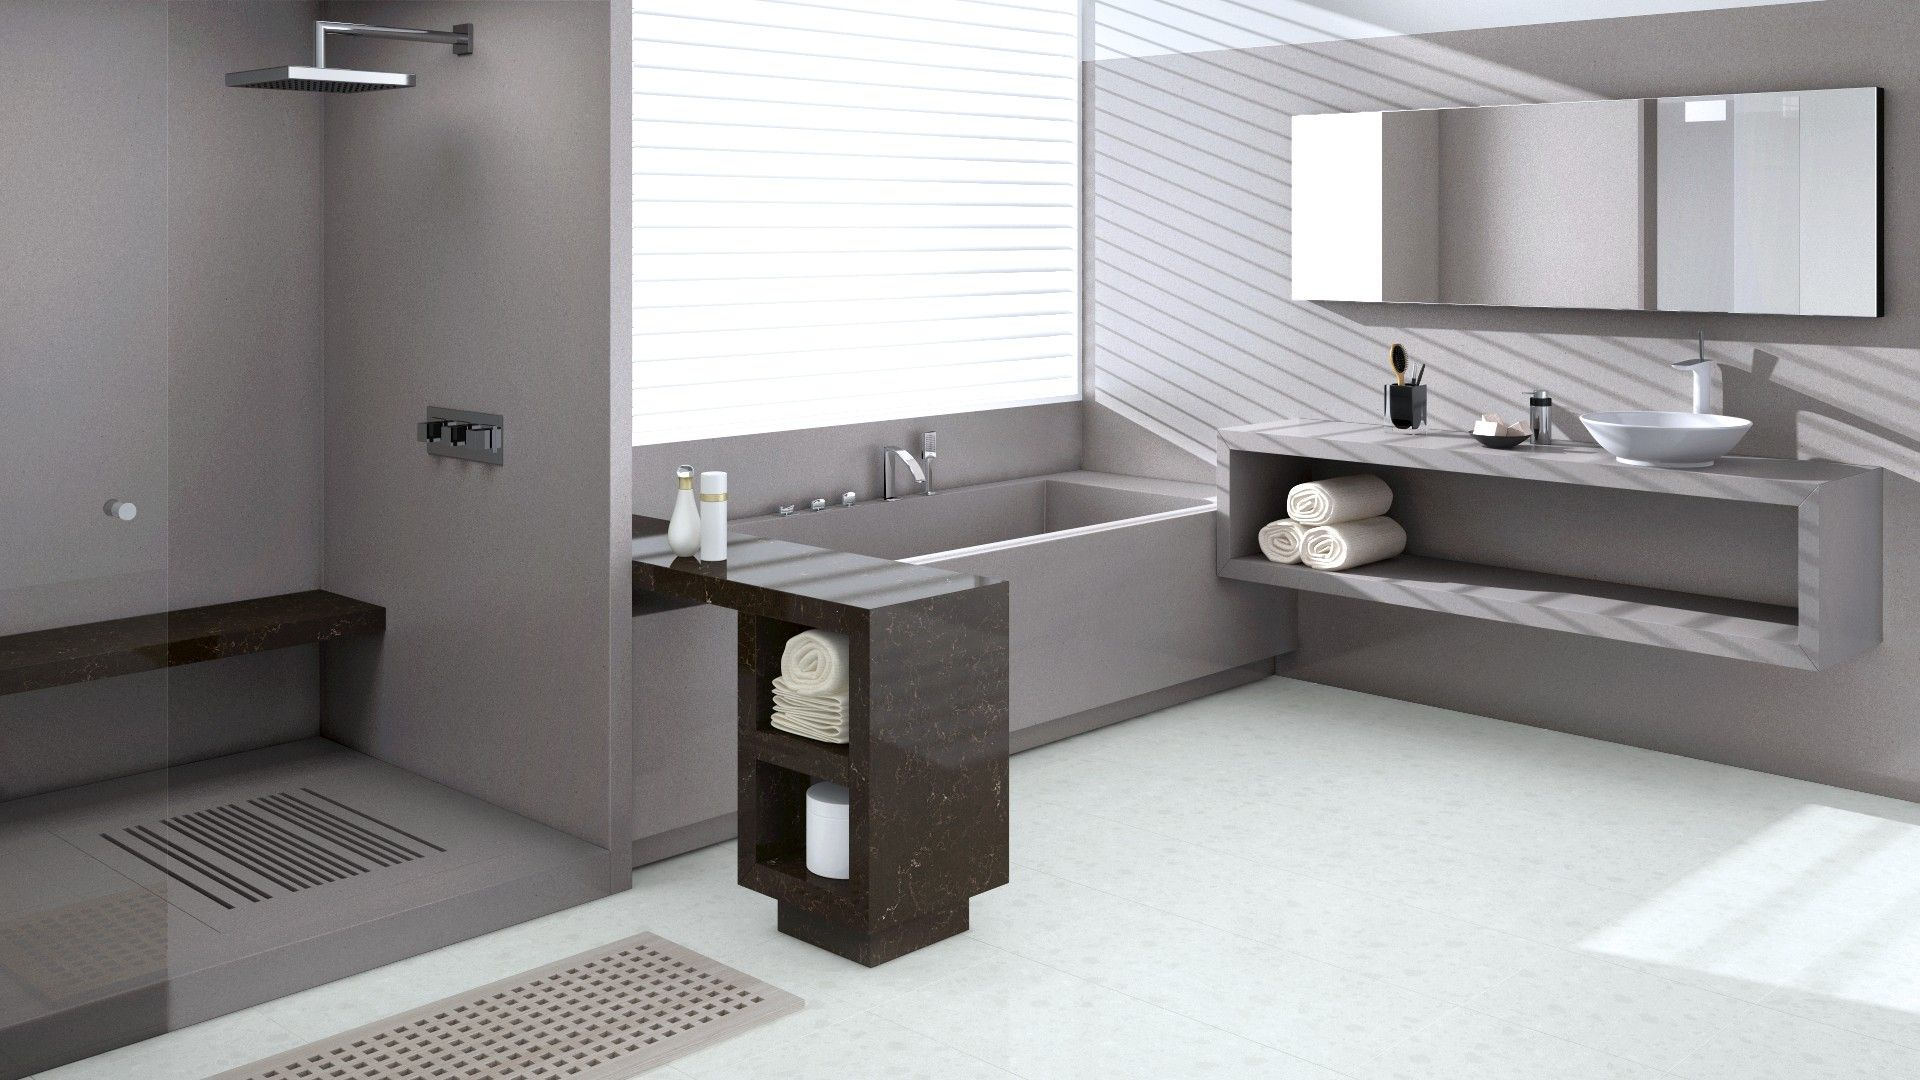 Caesarstone Visualizer See Which Colors Suit Your Design With The Help Of This Hand Kitchen Design Software Bathroom Design Software Virtual Kitchen Designer